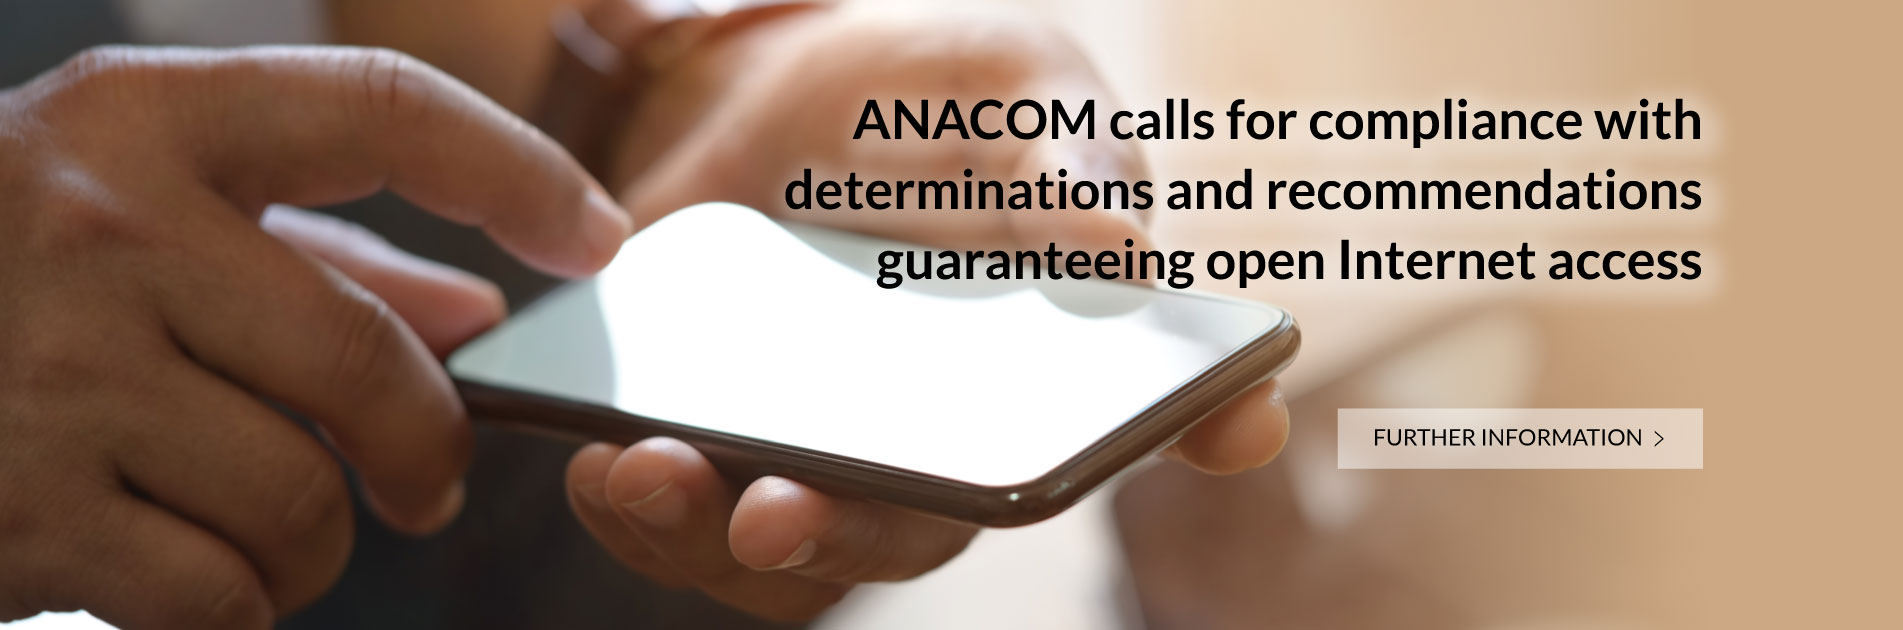 ANACOM calls for compliance with determinations and recommendations guaranteeing open Internet access